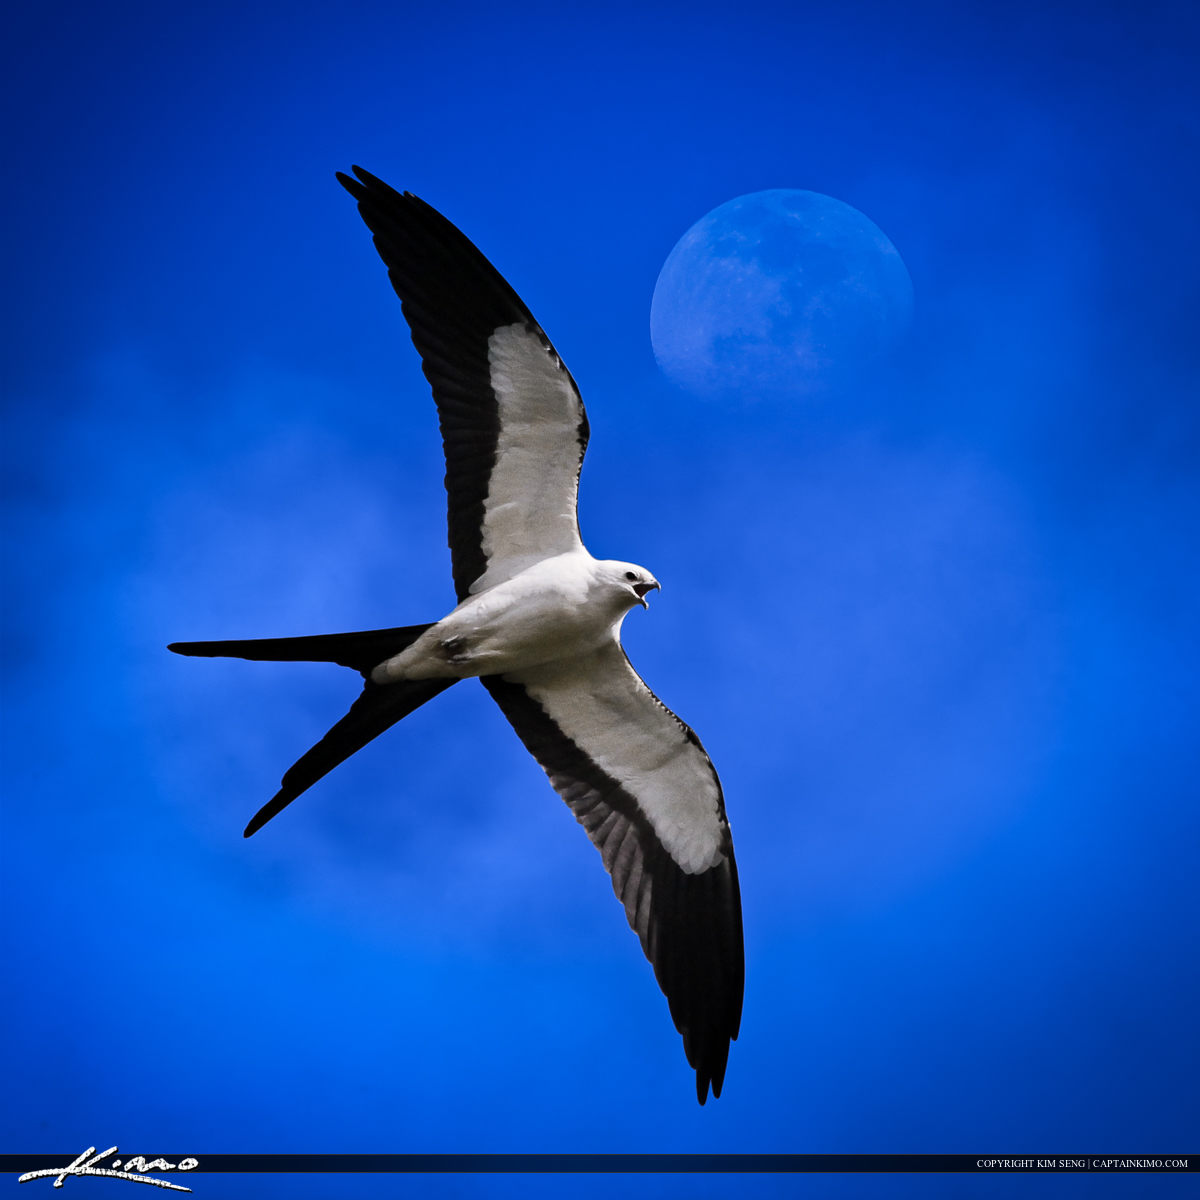 Swallow-tailed Kite Bird Flying in Sky